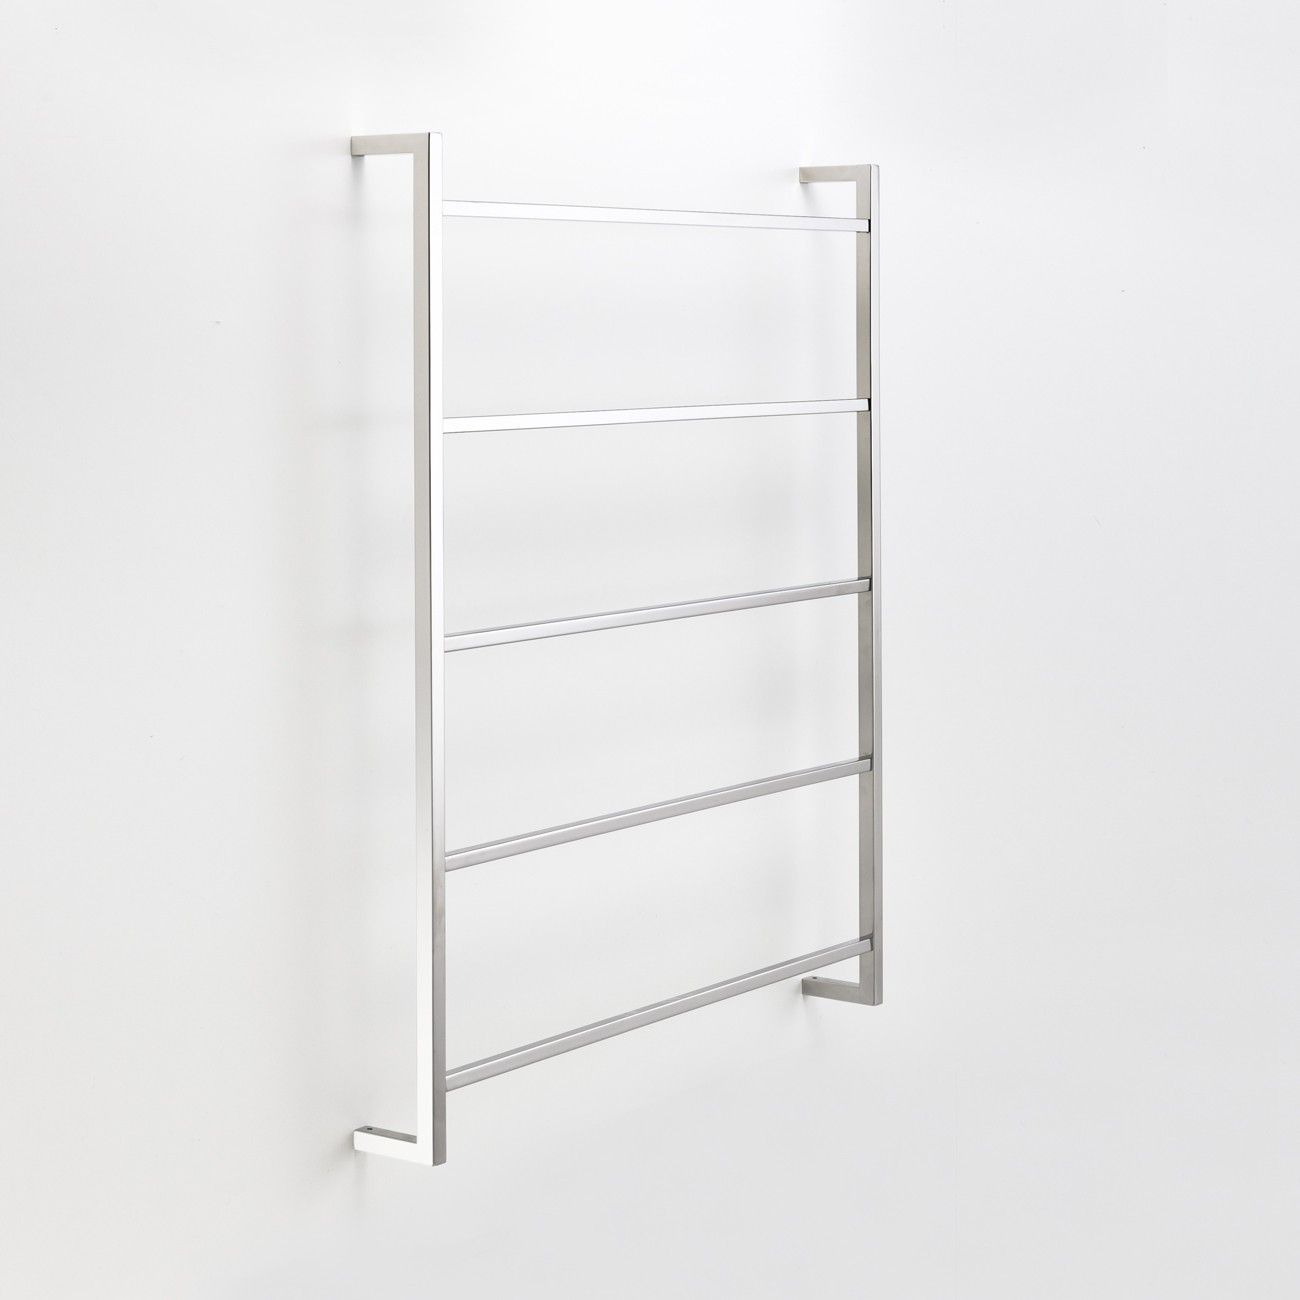 ea634bf72a Strap by Rogerseller Towel Ladder Polished Stainless Steel ...